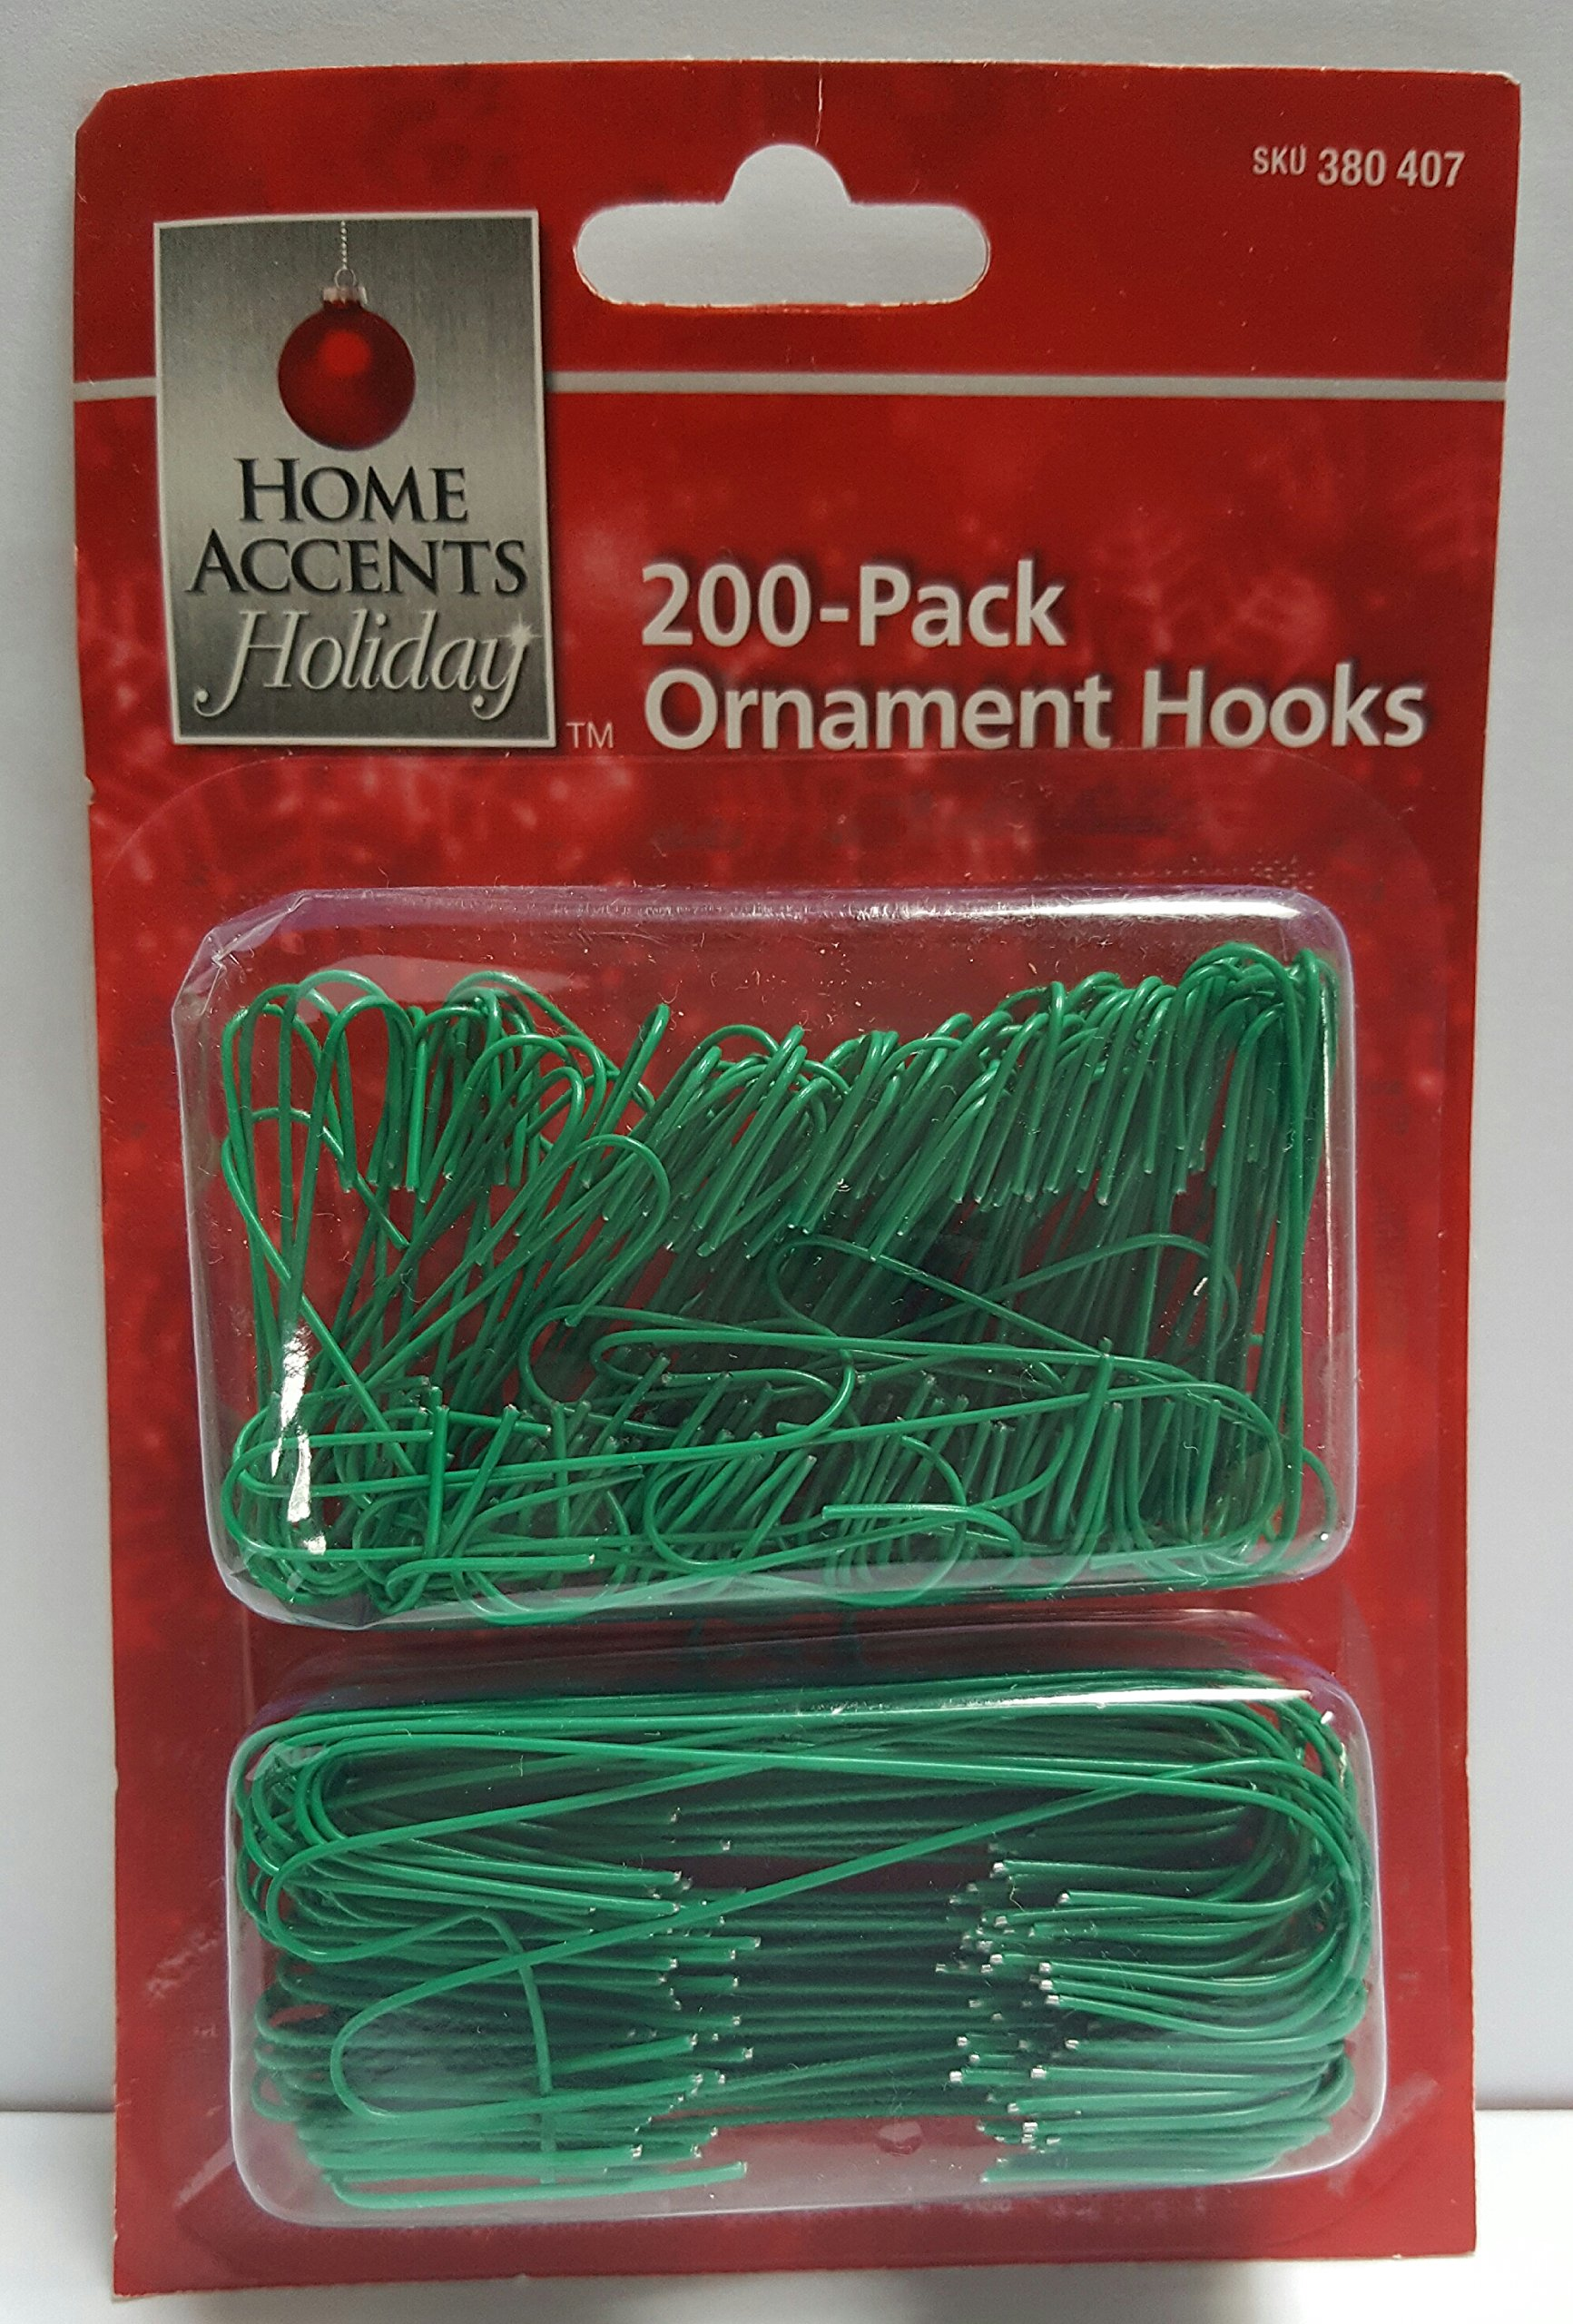 Home Accents Holiday Green Ornament Hooks 200ct